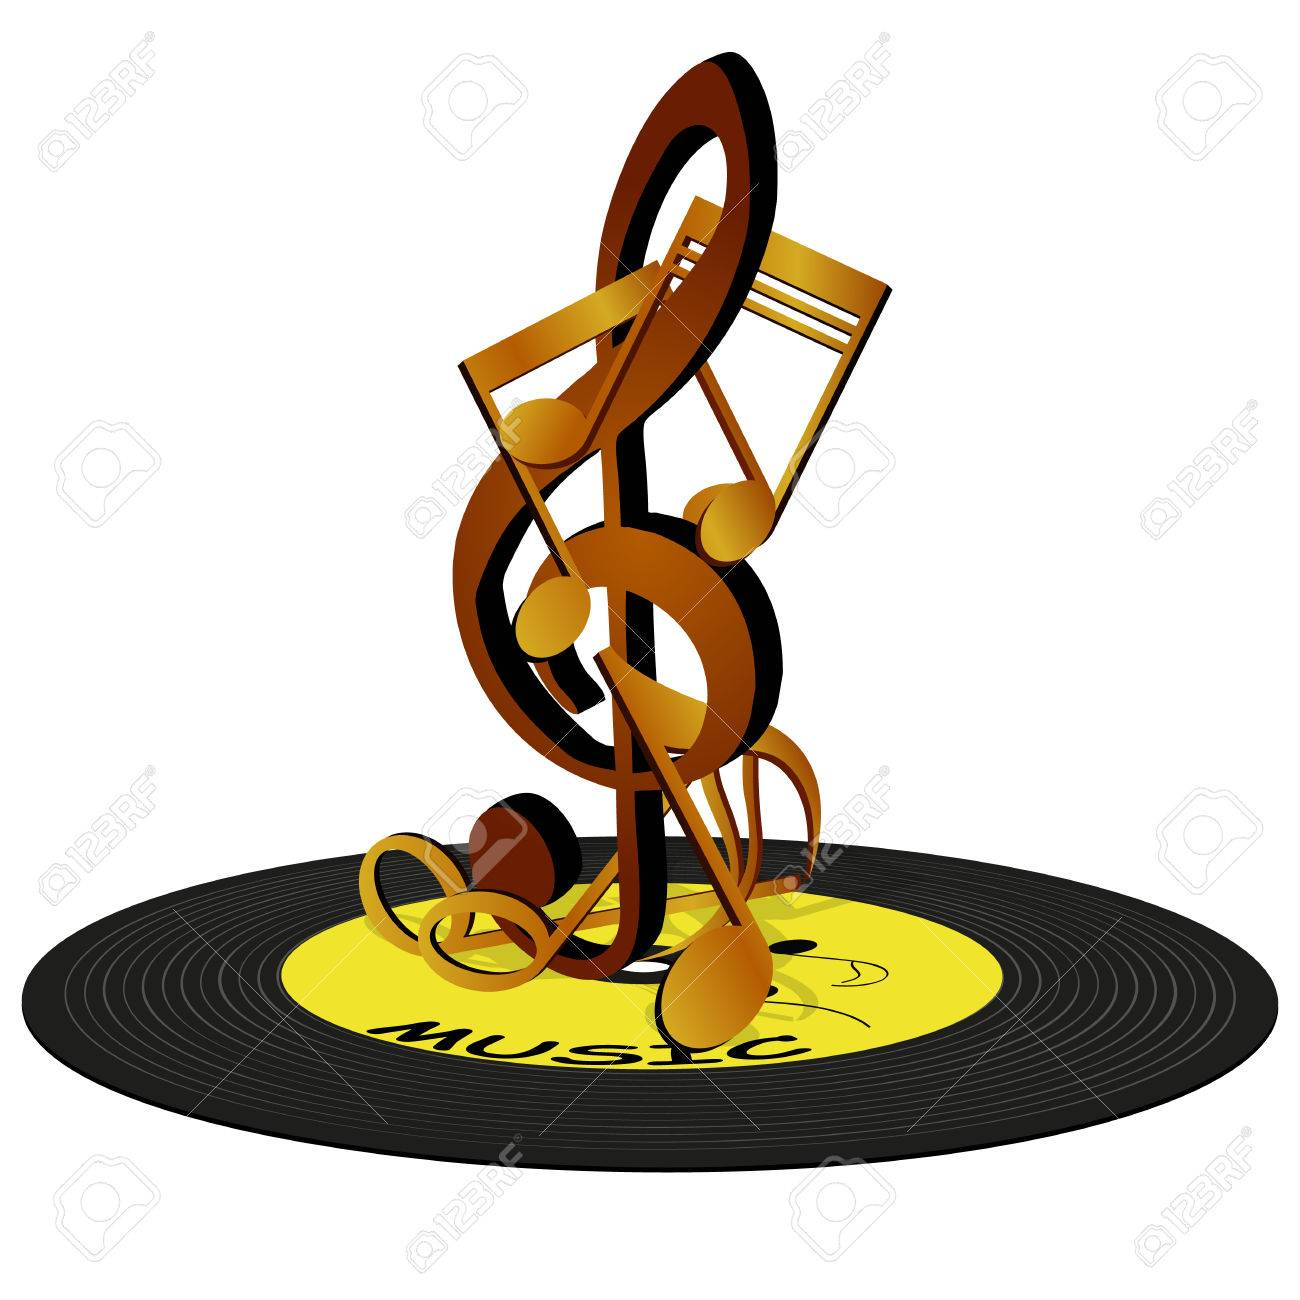 vector illustration of musical notes on the treble clef standing rh 123rf com Music Notes Graphics Music Notes Graphics